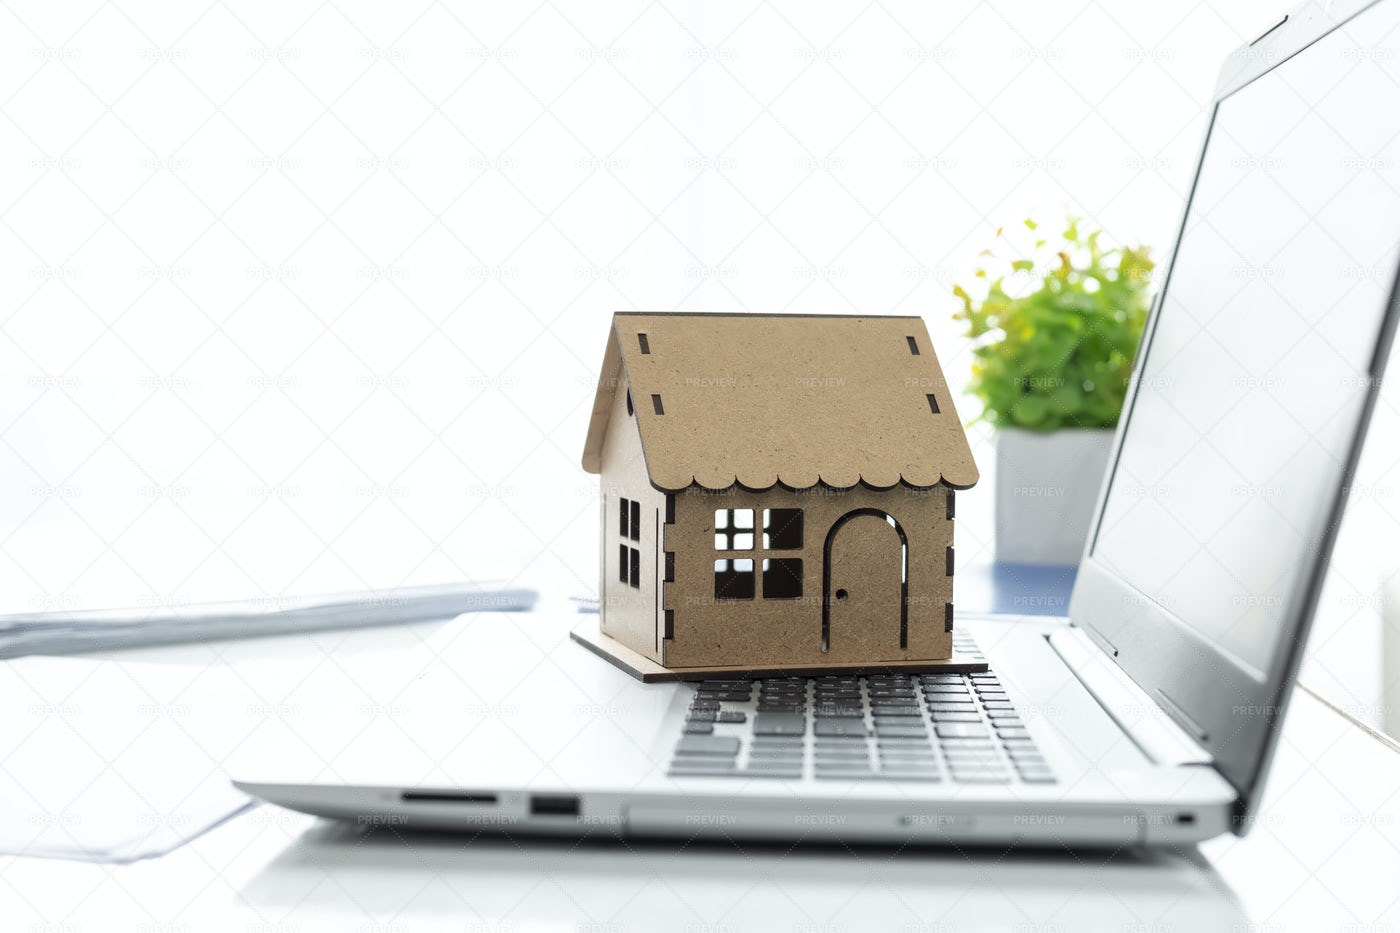 Model House And Laptop.: Stock Photos